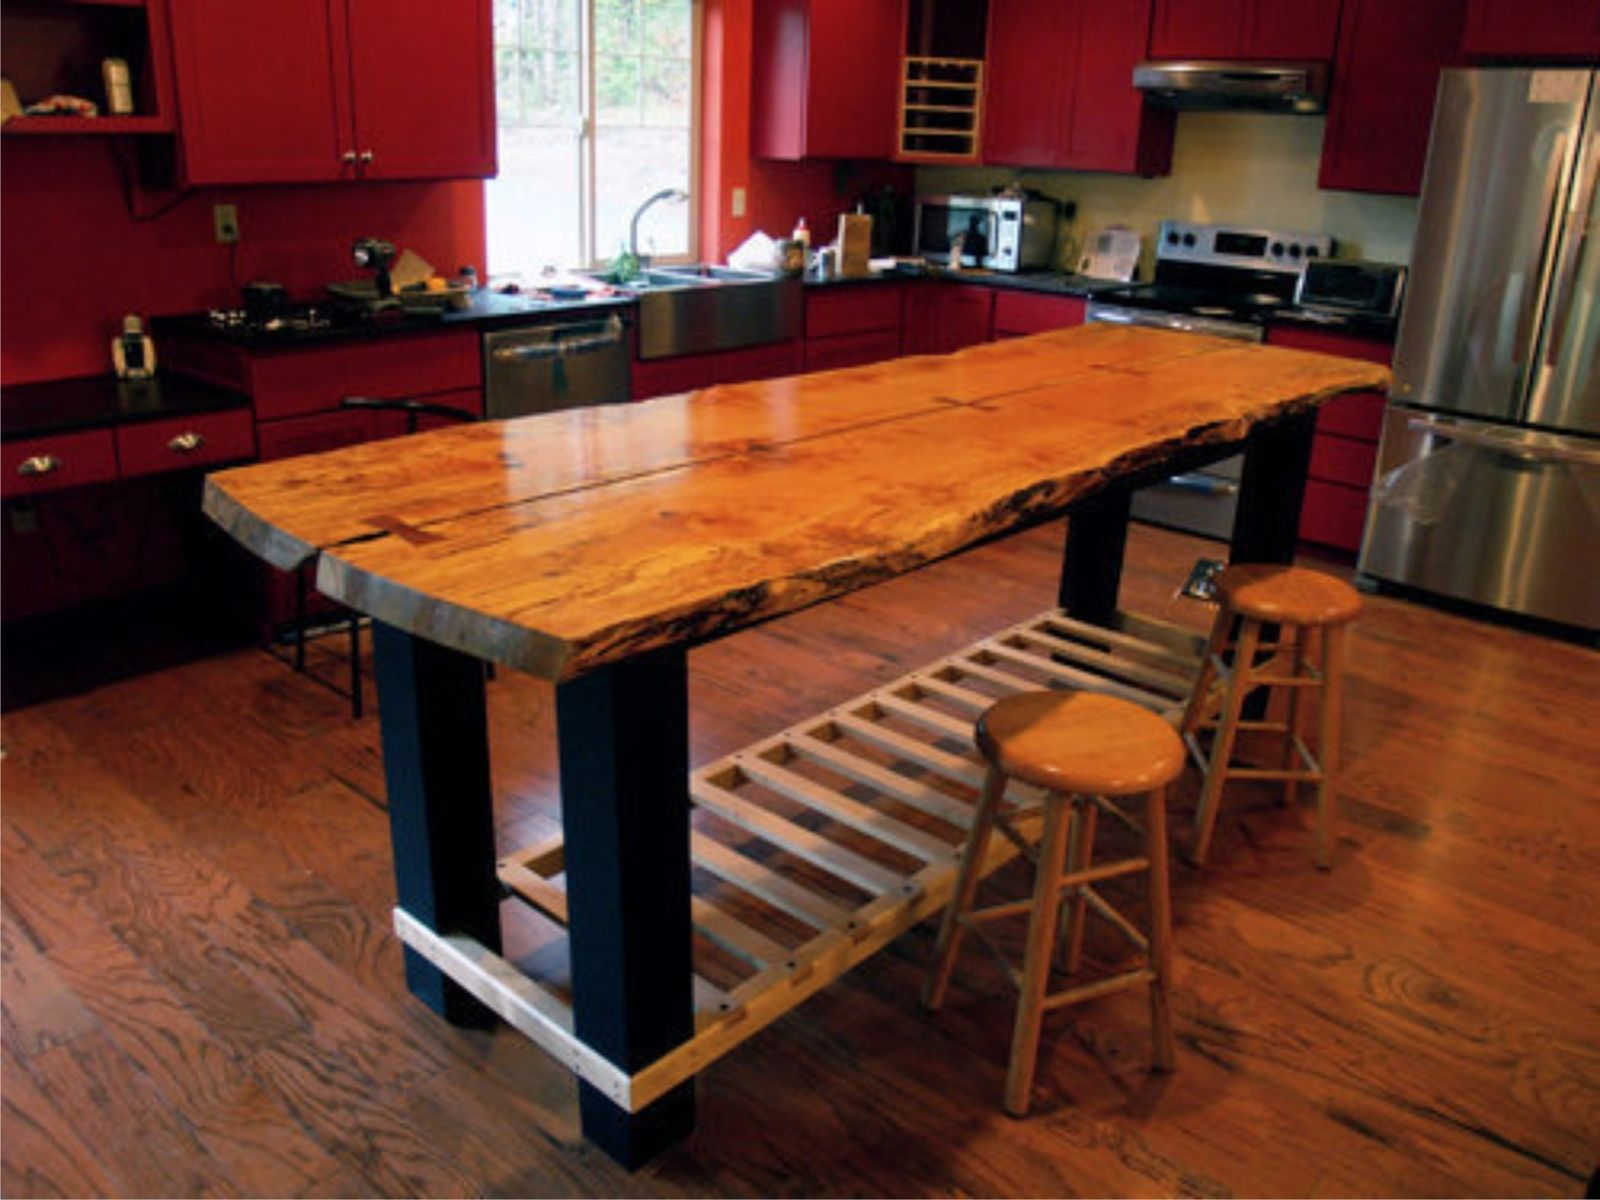 Handmade custom island table by jeffrey coleson art and Kitchen breakfast table designs